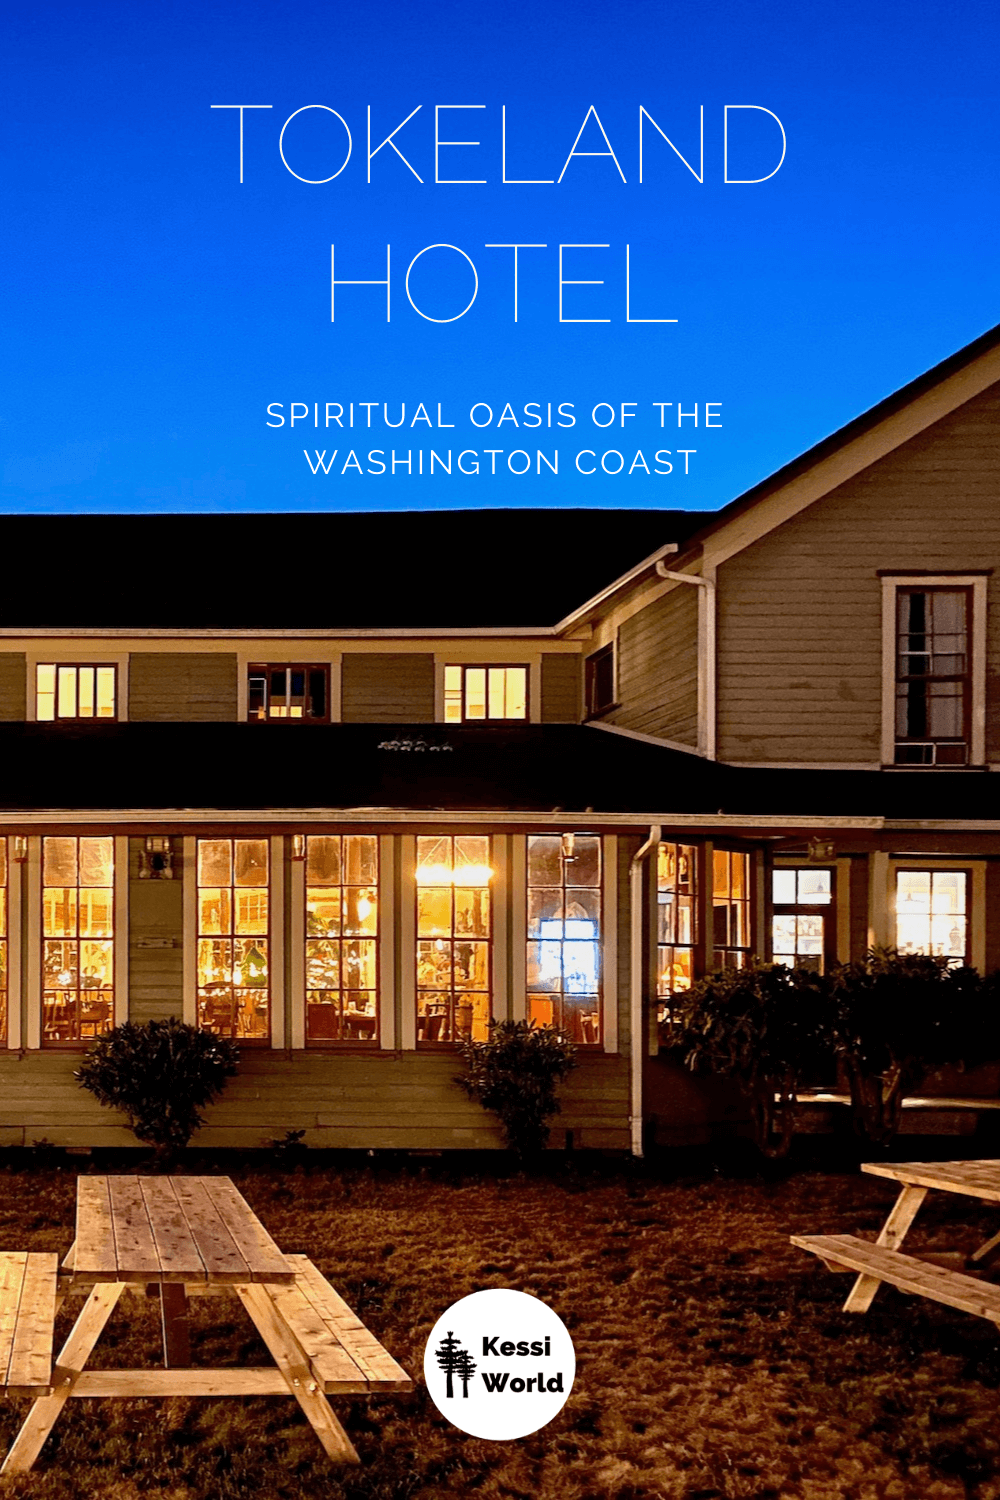 This Pinterest tile shows the outside of the Tokeland Hotel at night. There are wood picnic tables and all the eight paned windows of the restaurant inside are ablaze with warm yellow light. The sky is a dusk colored blue.